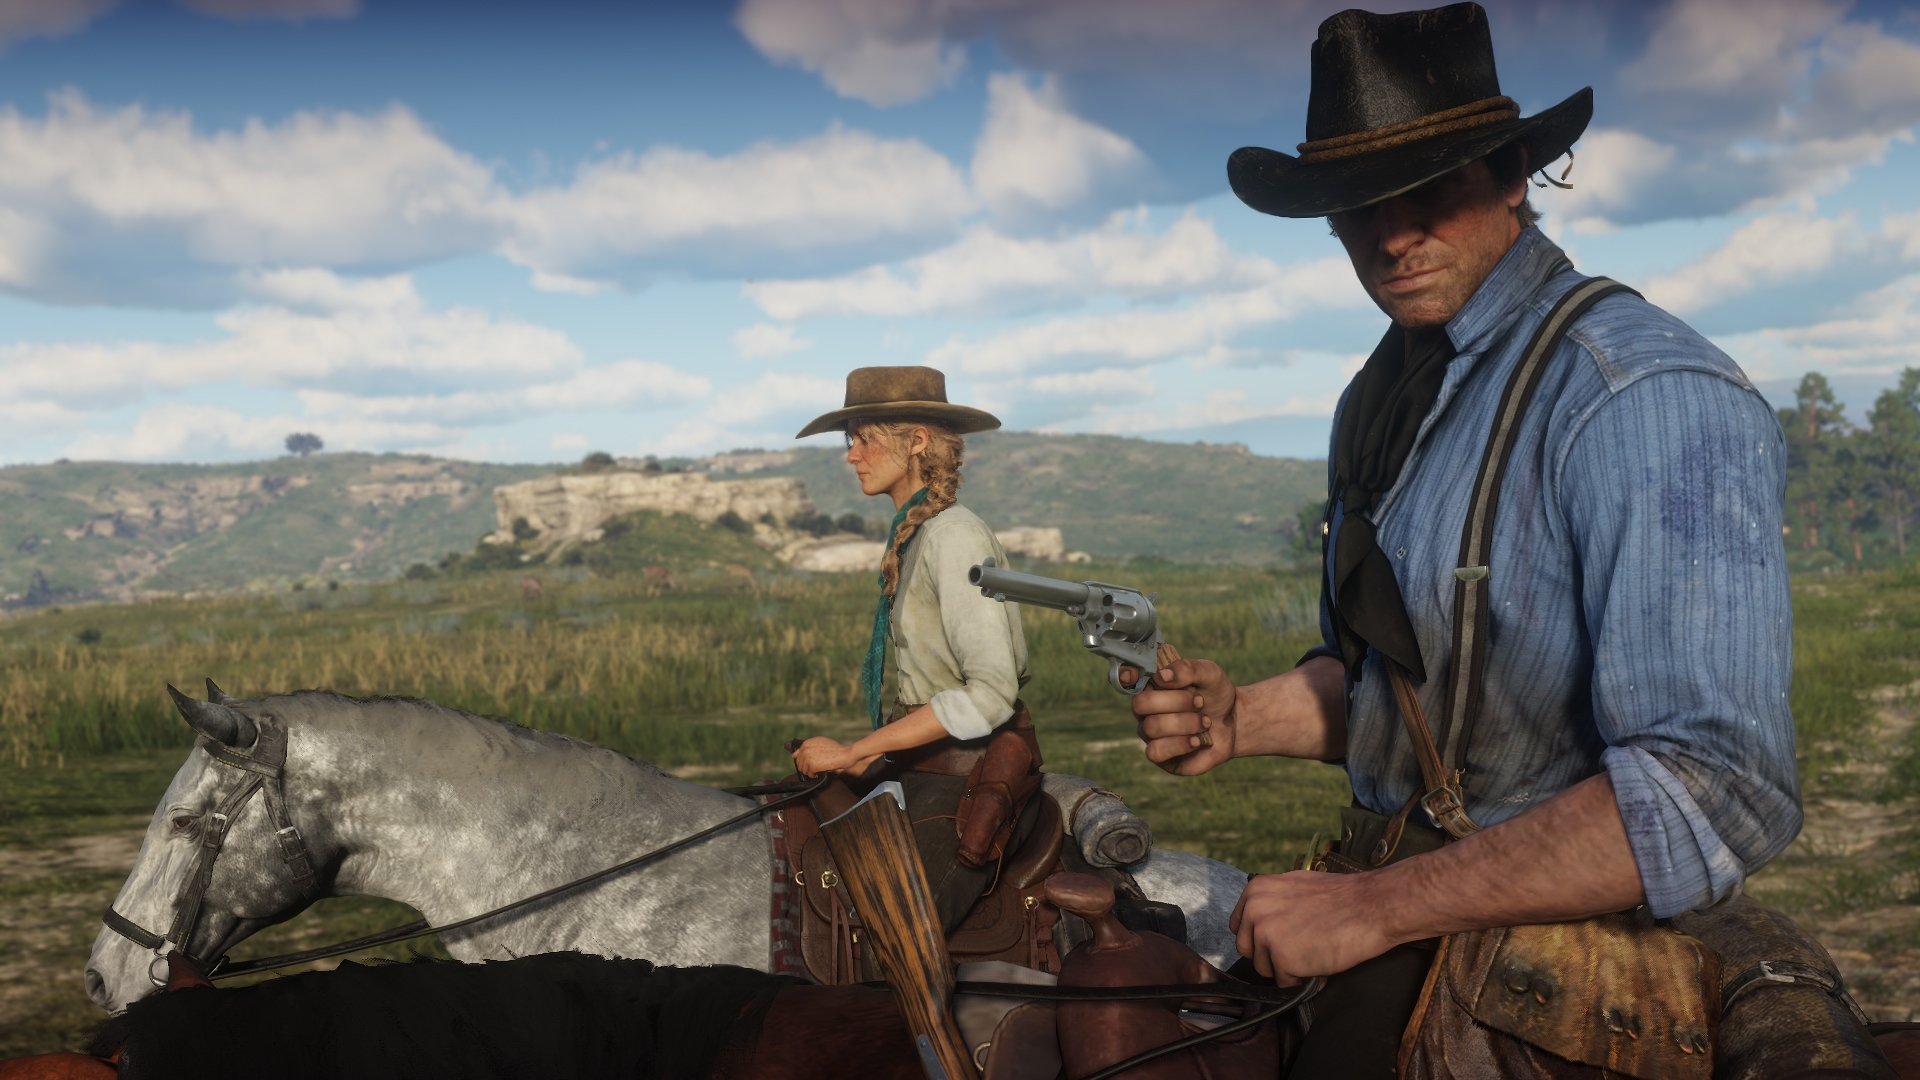 Red Dead Redemption 2 | PS4/X1 | 10/26/2018 5b5313332394d20cd7c3c91987529d9dd15a242e